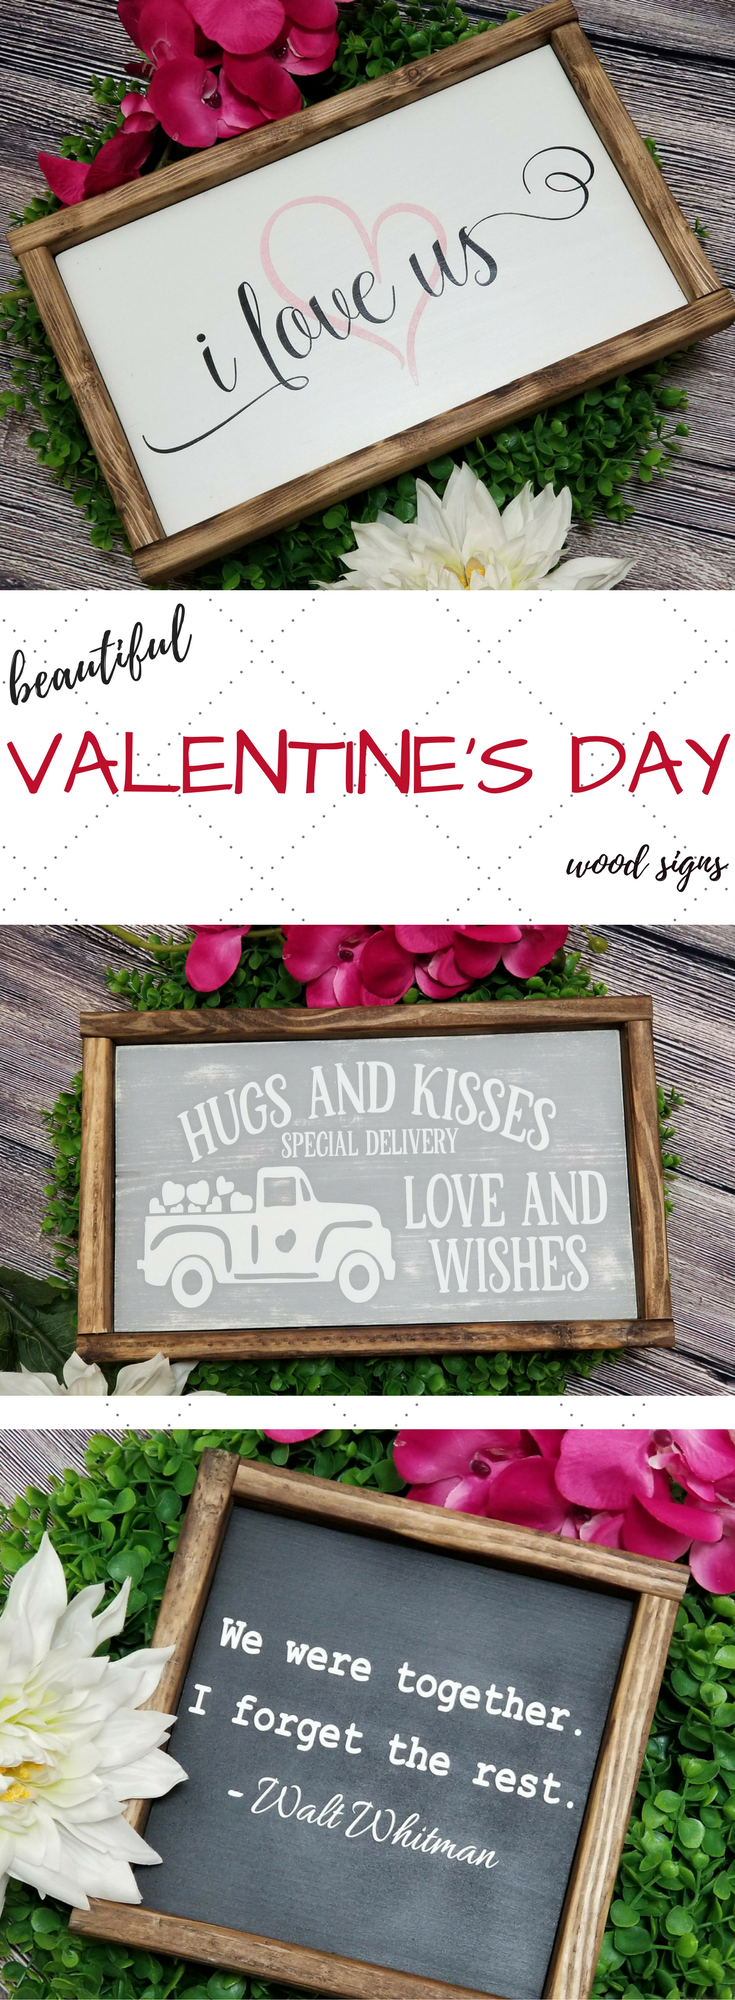 Valentines Day Signs from Etsy!!! I love these little cuties. #farmhousedecor #valentinesideas #valentinesday